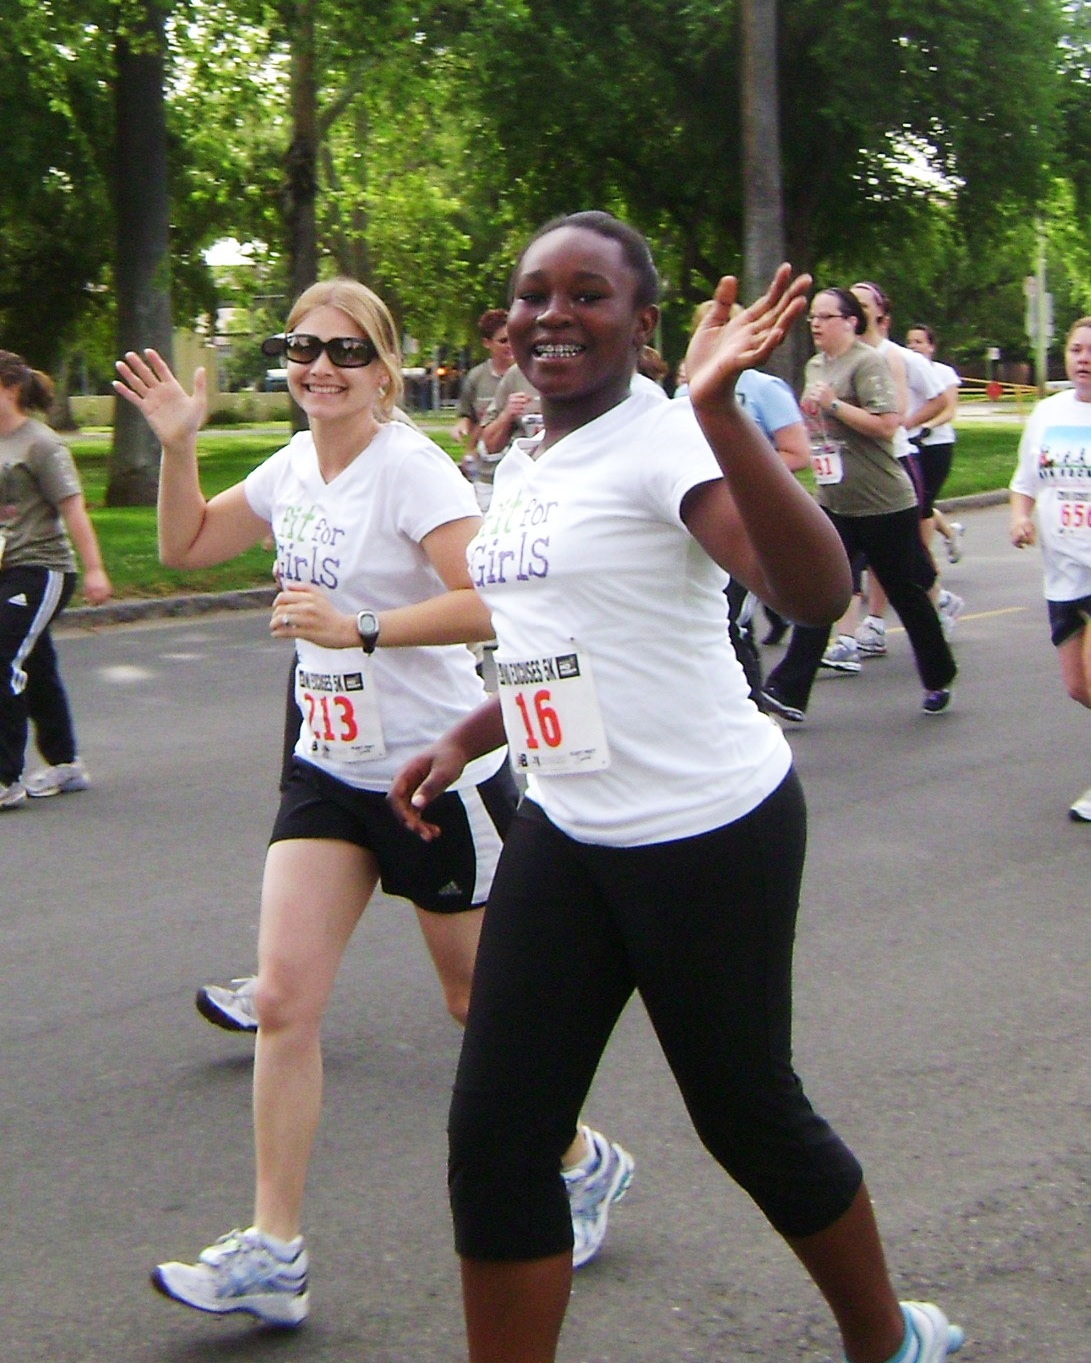 Our Vision - Fit for Girls is a free 9 week program that exists to improve the overall health and well-being of adolescent girls by helping them prepare mentally and physically for a 5K race. Fit for Girls empowers middle-school girls to build confidence and resilience, develop life skills, and experience success as they cross the first of many literal and figurative finish lines!Learn More